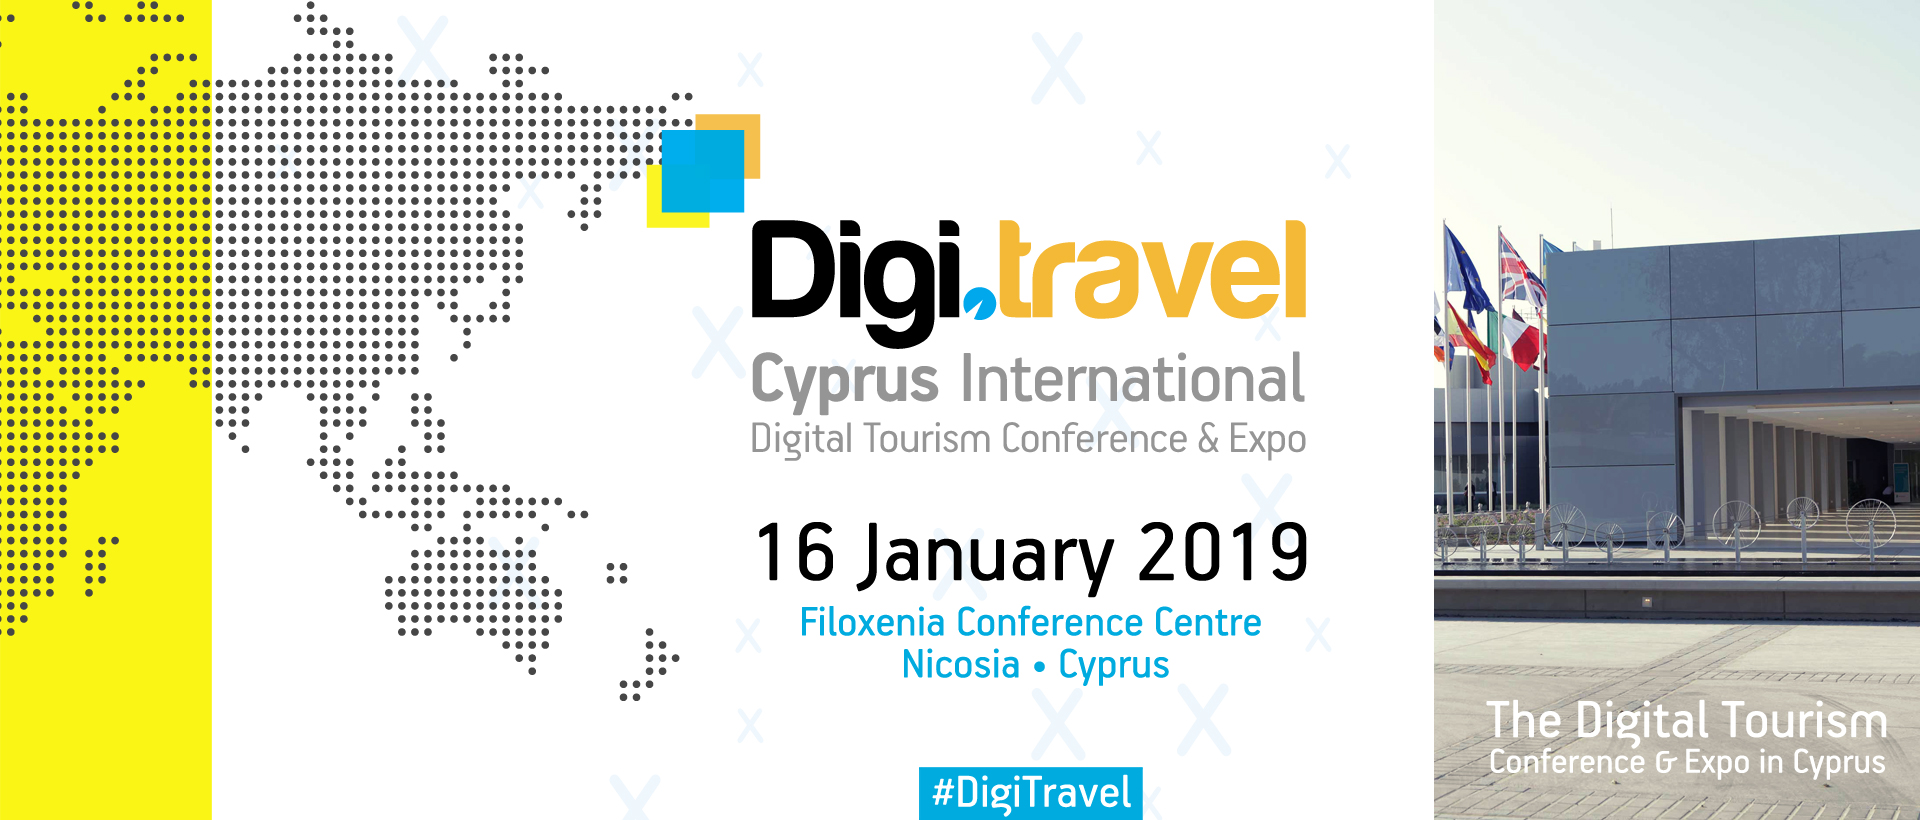 Digi Travel Cyprus International Conference & Expo 2018